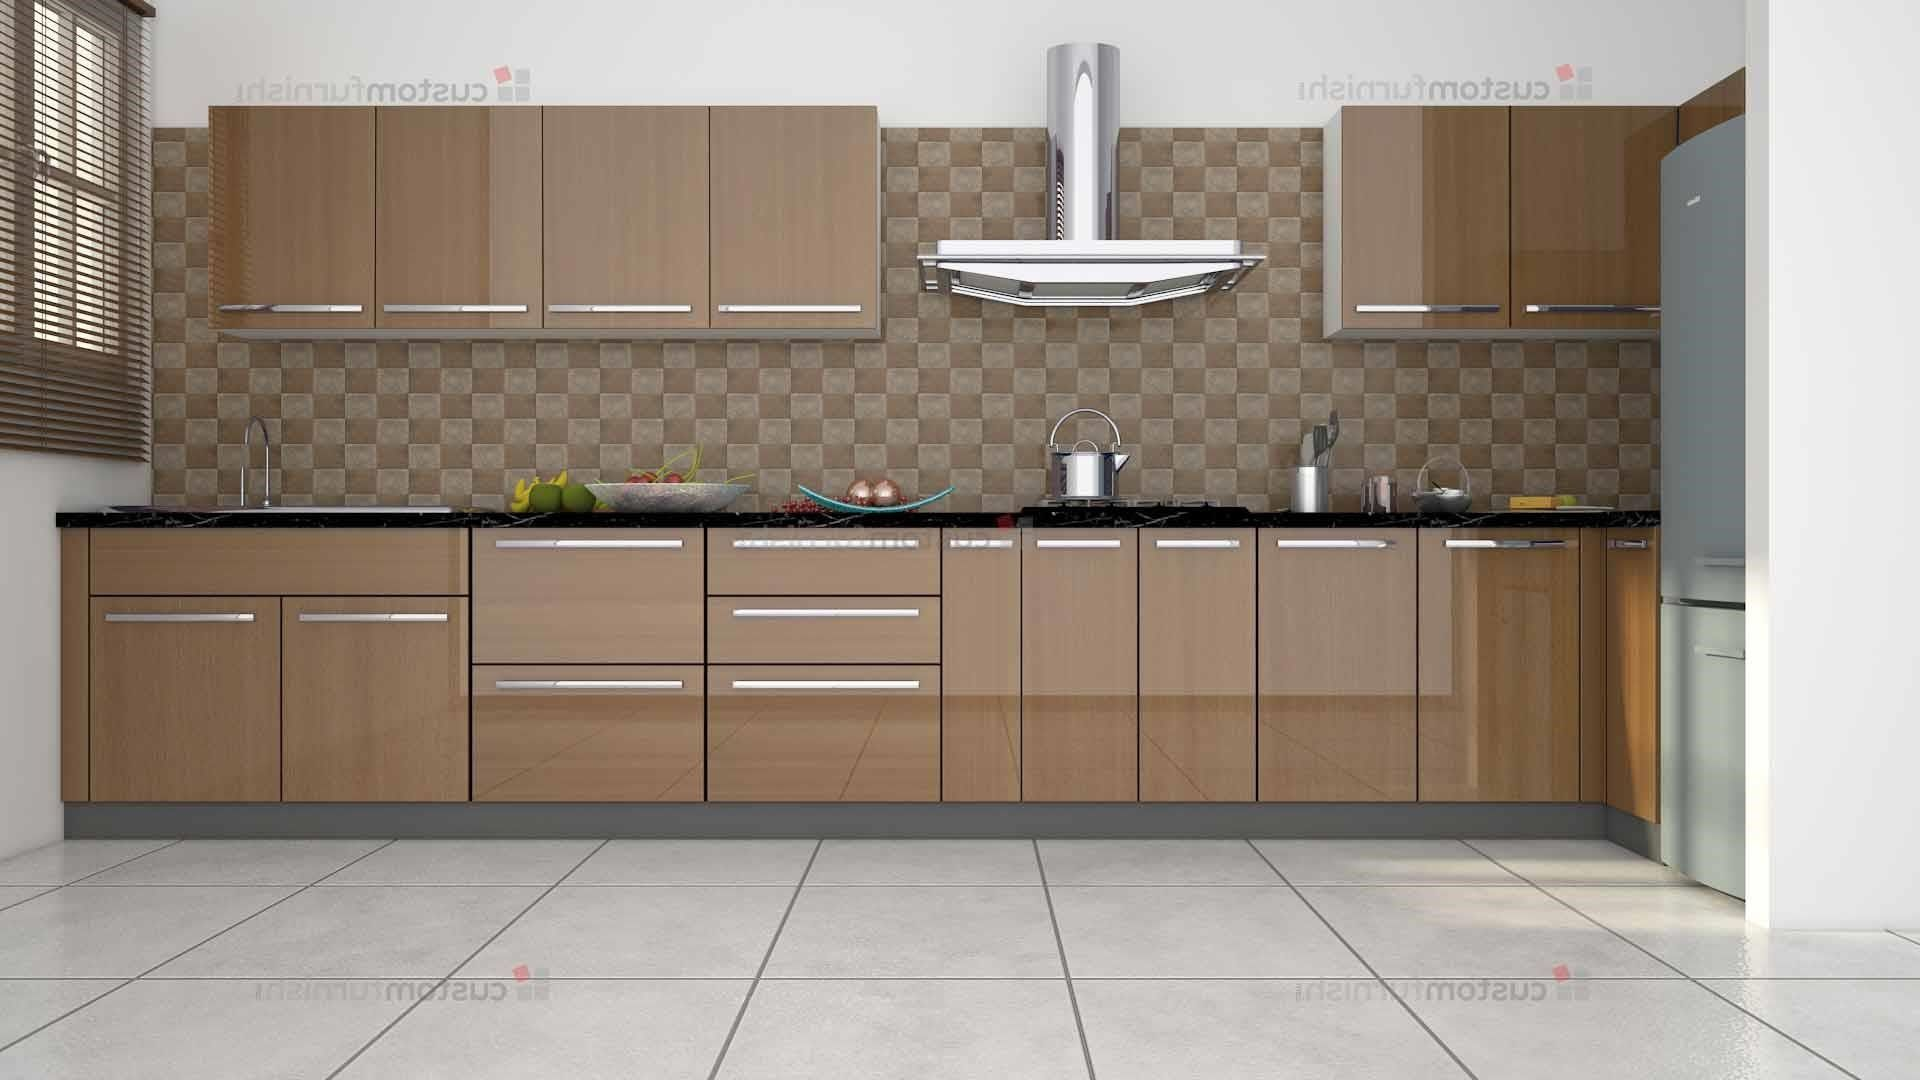 Kitchen Design Catalogue Lshapedmodularkitchendesignscatalogue 1920×1080 Pixels .